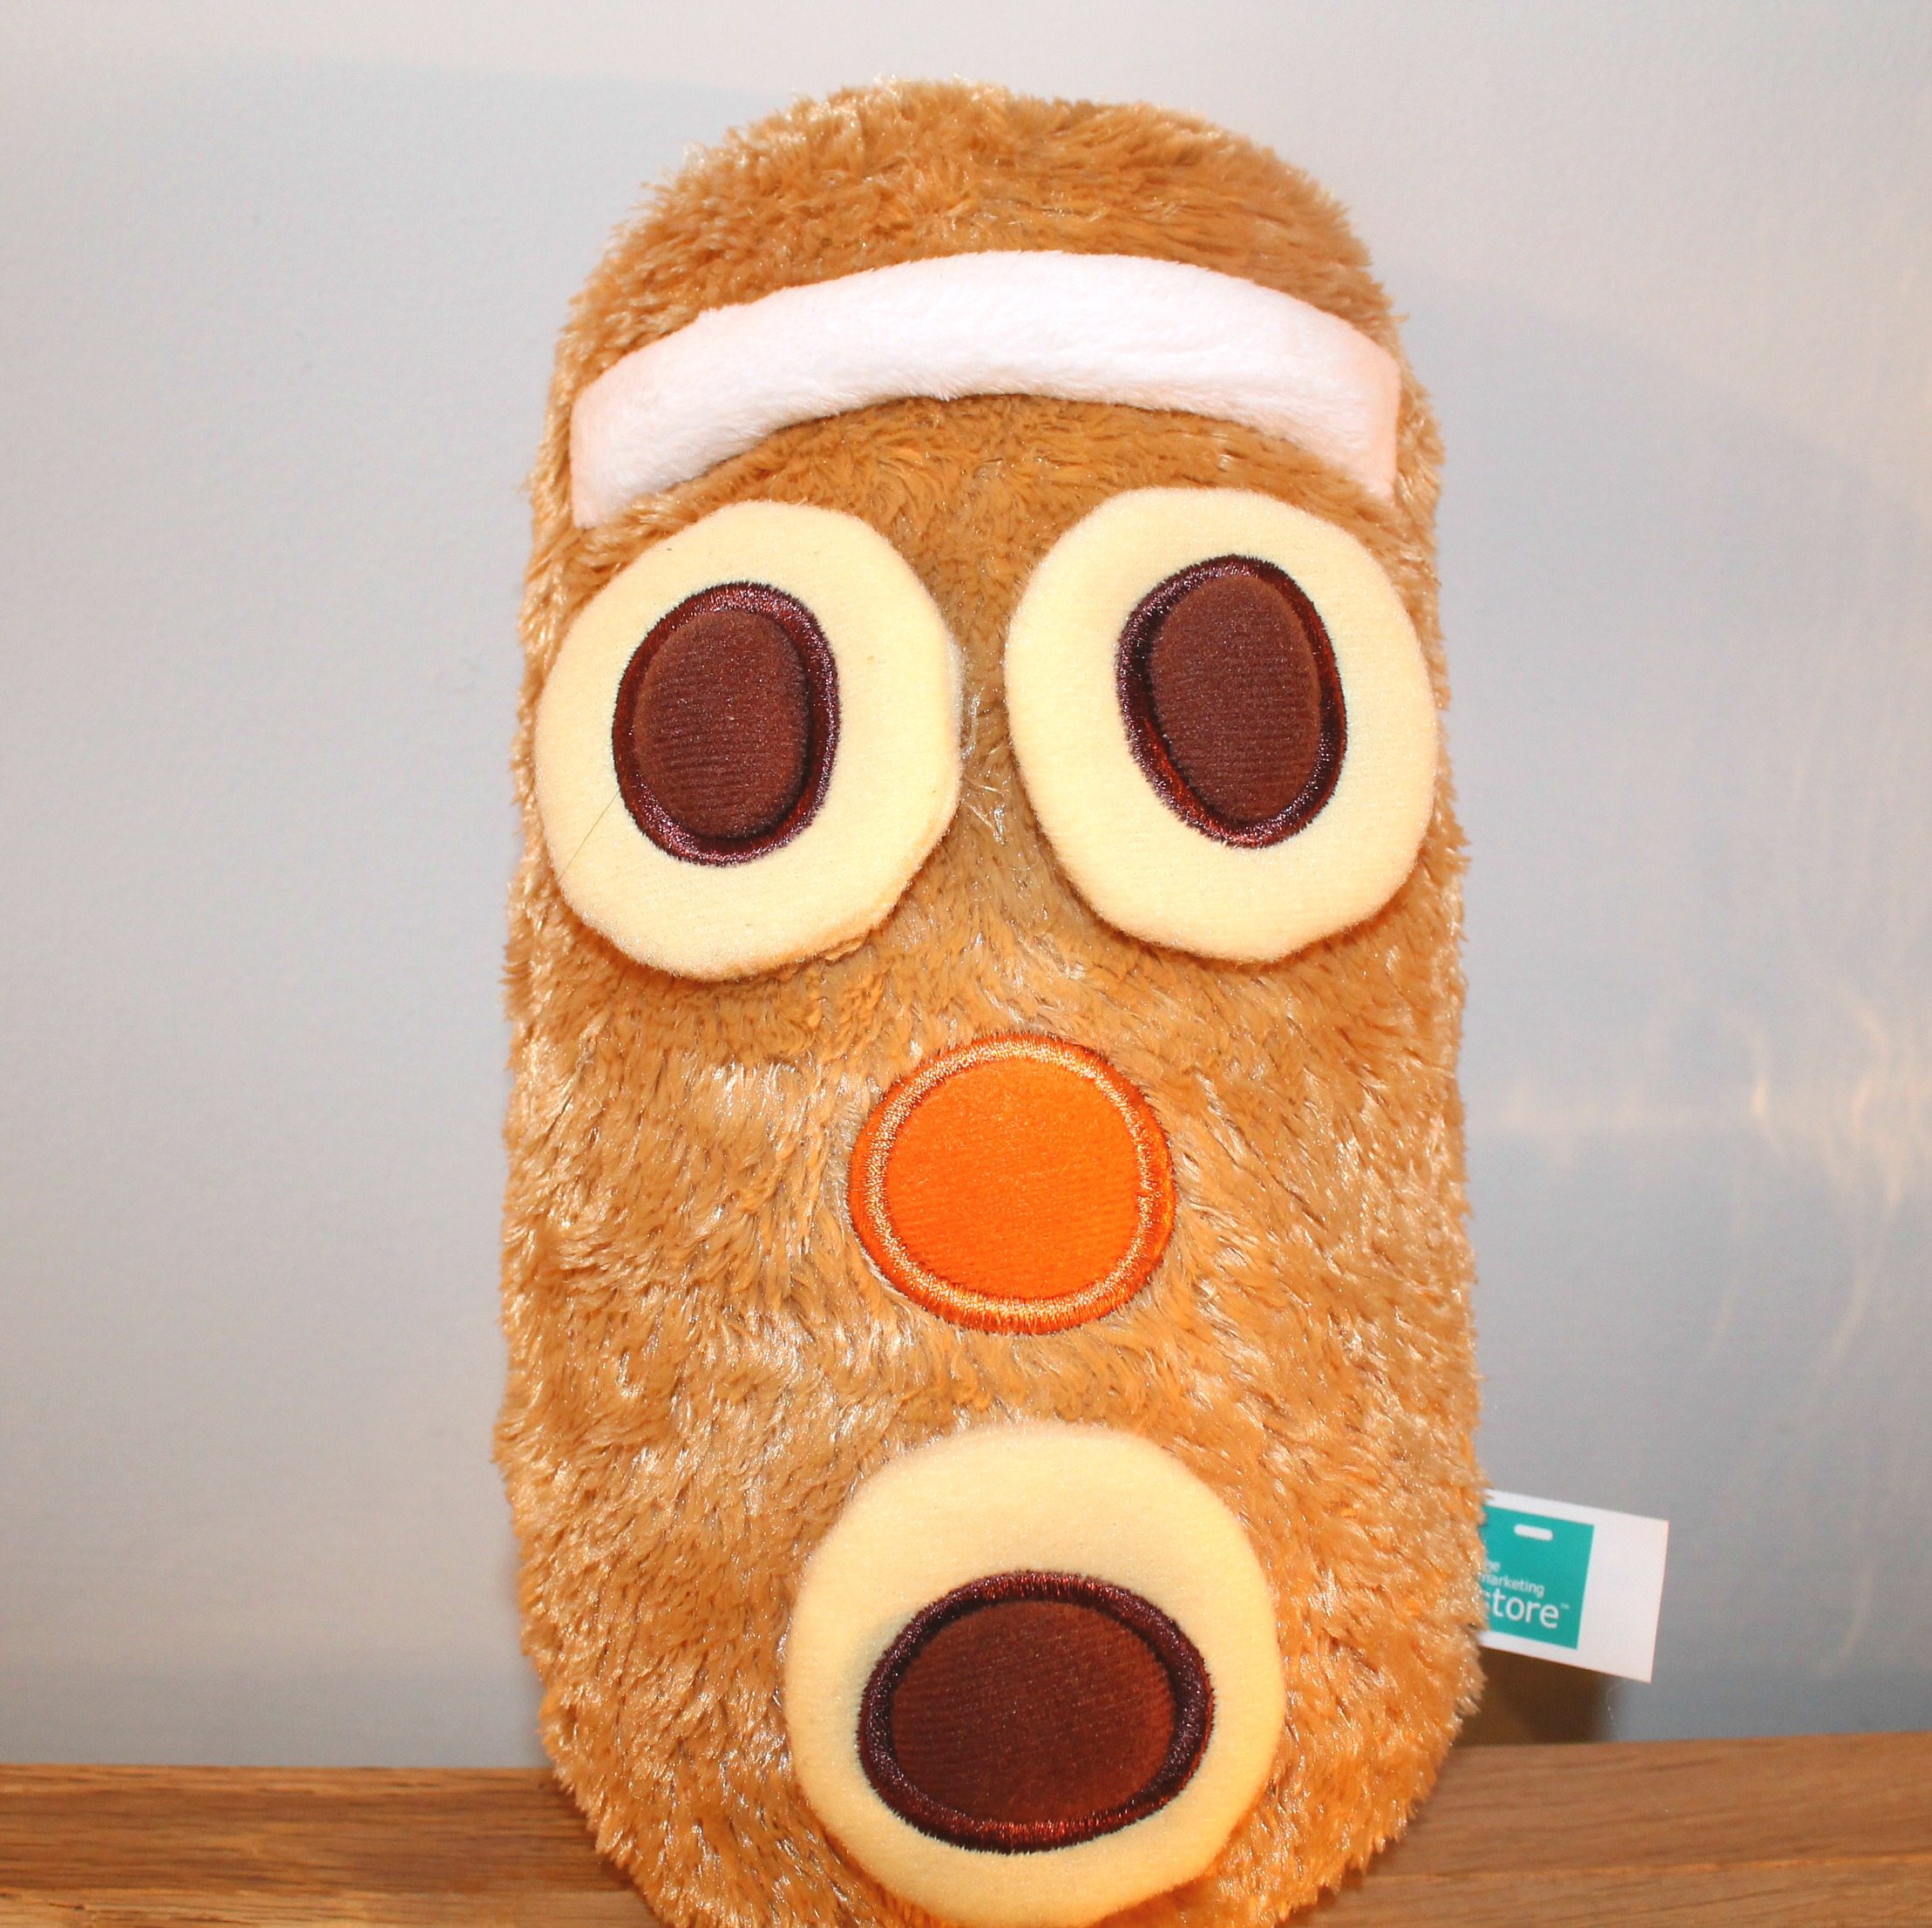 Weetabuddies - How would you create yours? - Weetabuddies plush toy